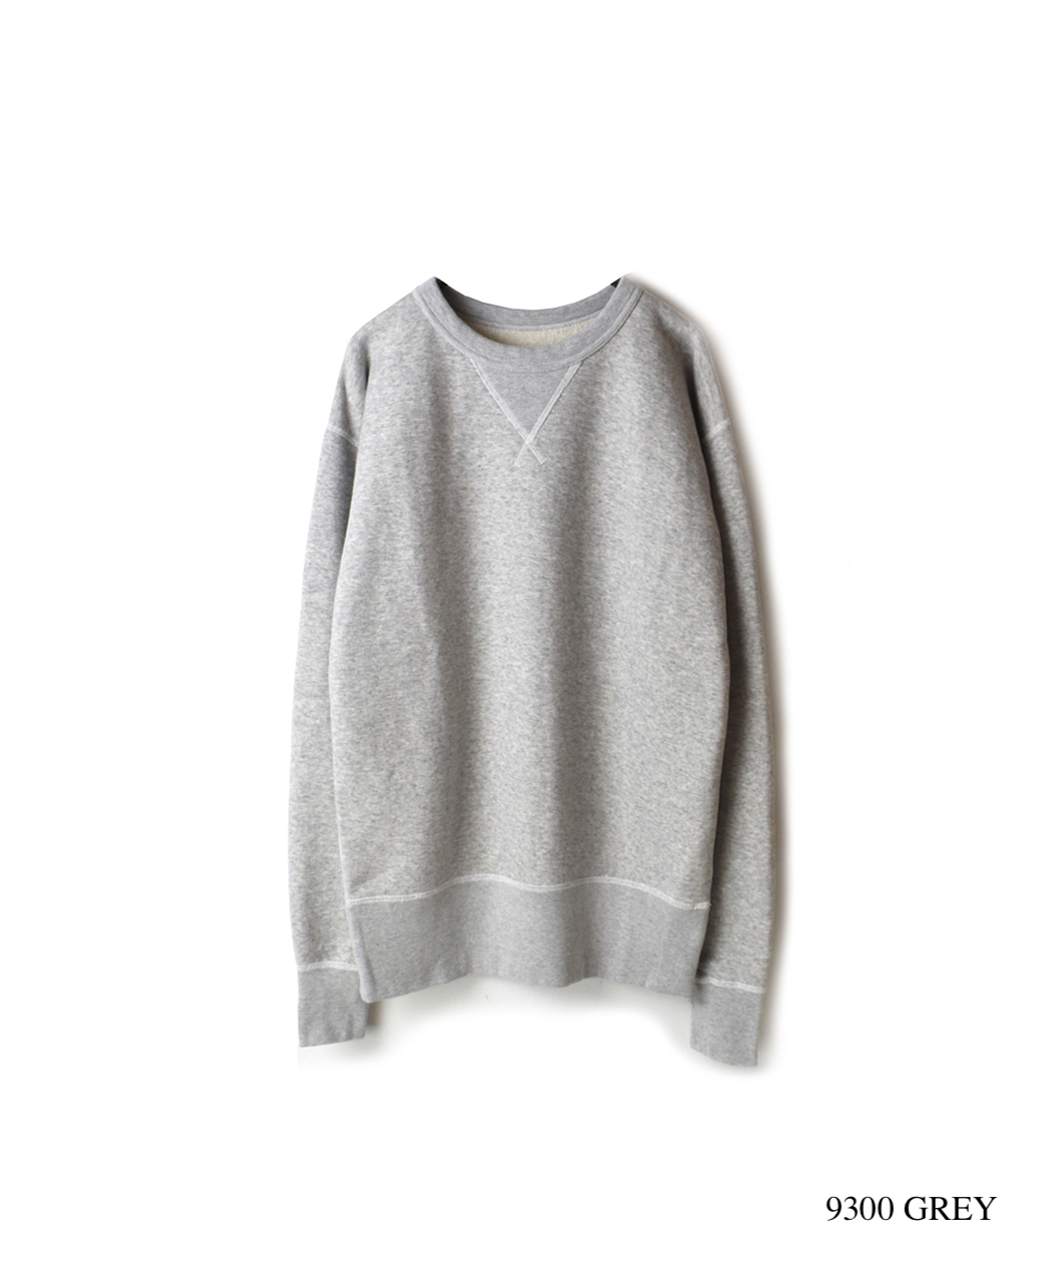 RNHT1851 SWEAT SHIRT